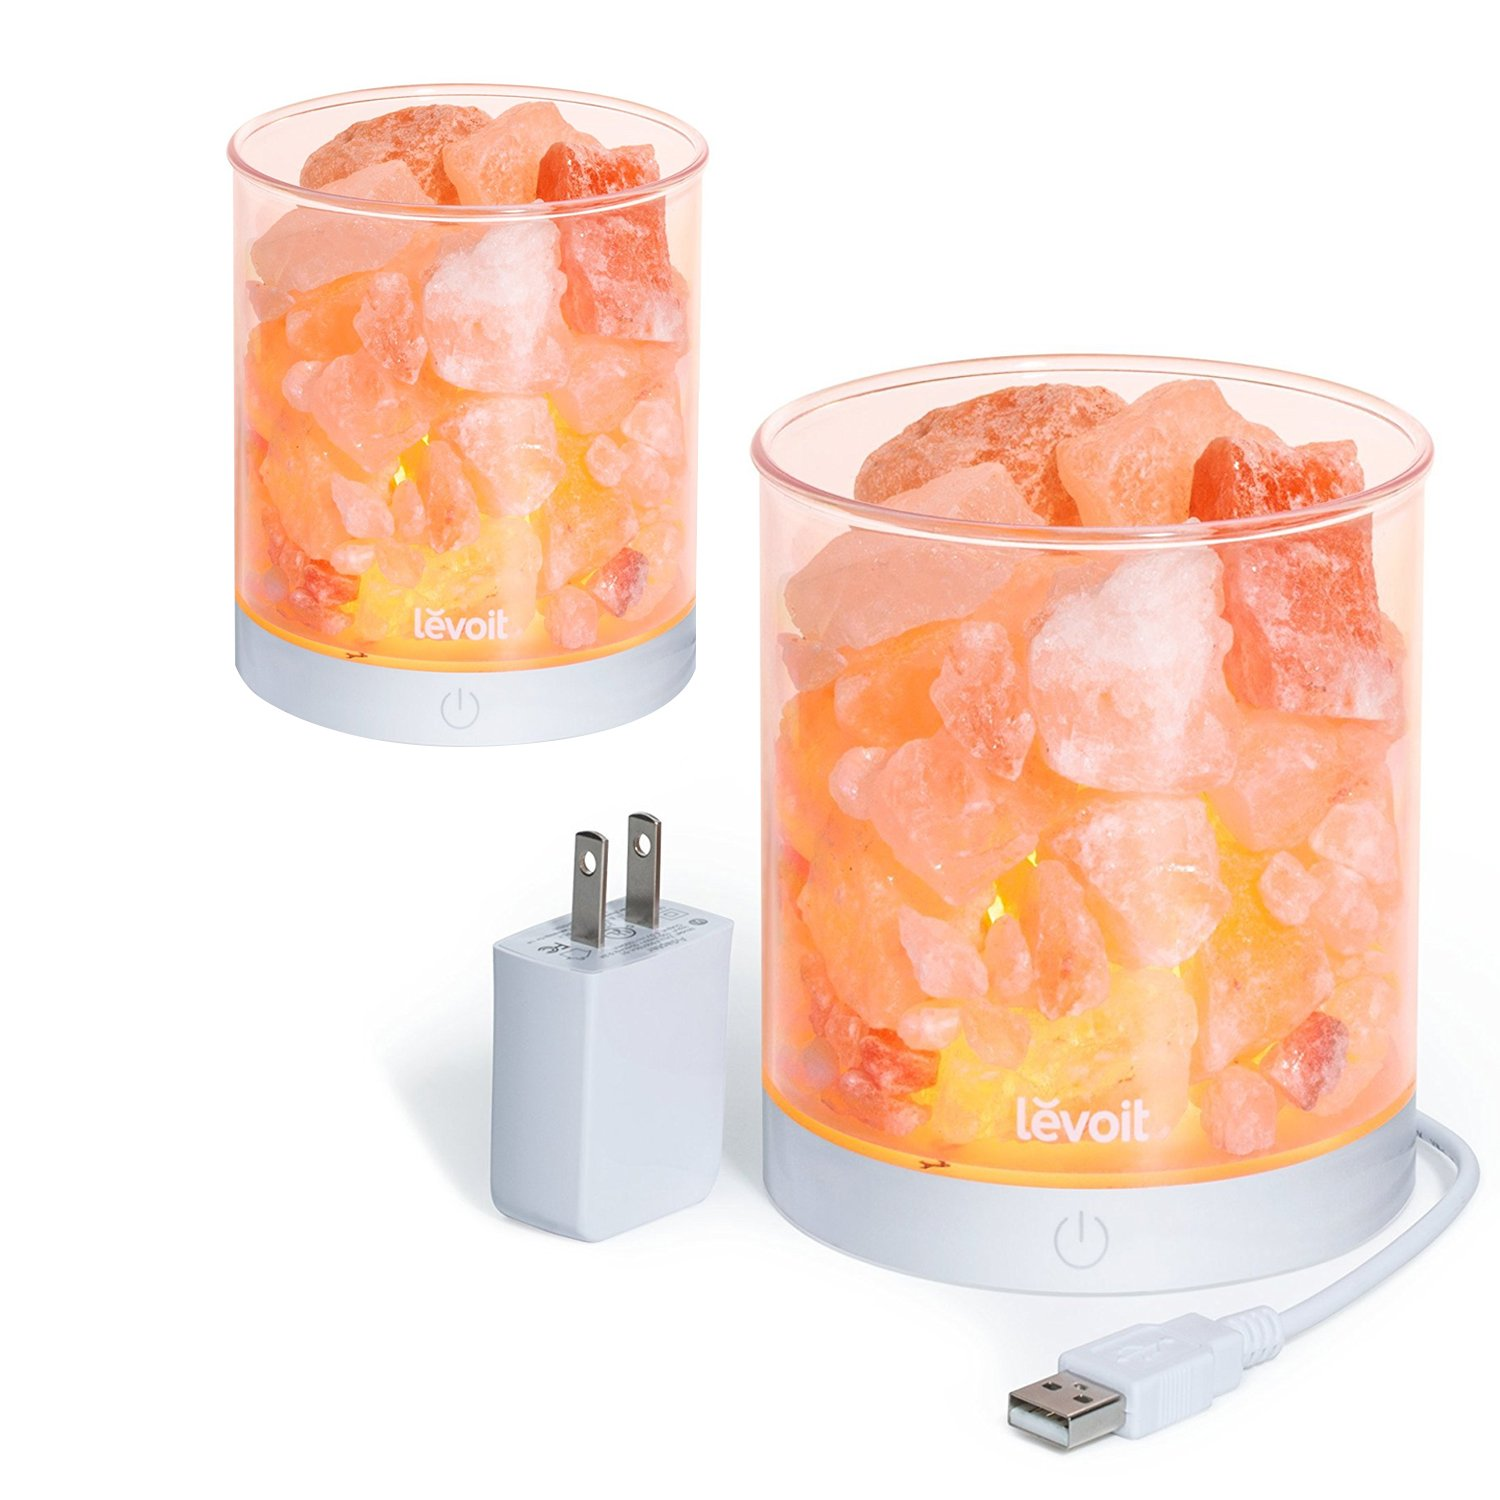 Levoit 2 Pack Cora Himalayan Salt Lamp Natural Glow Pink Sea Crystal Rock (Portable Design), 2 pounds,Touch Brightness Dimmable Control, Levoit Basin Design,UL-Listed Cord and Gift Box